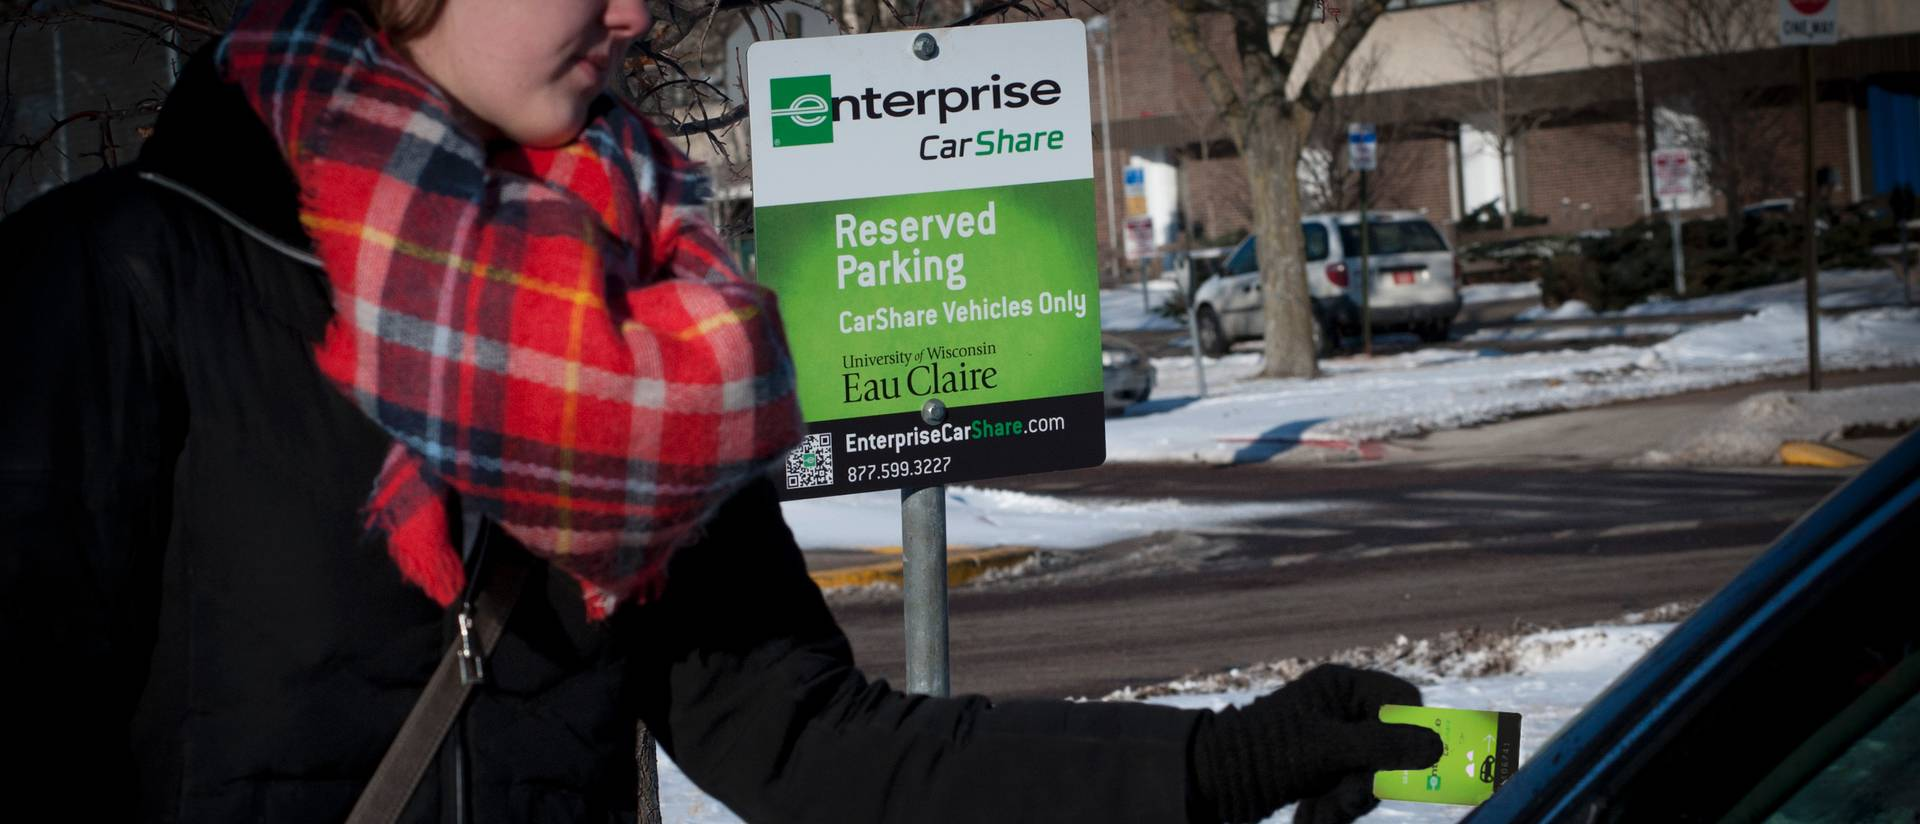 Enterprise CarShare program